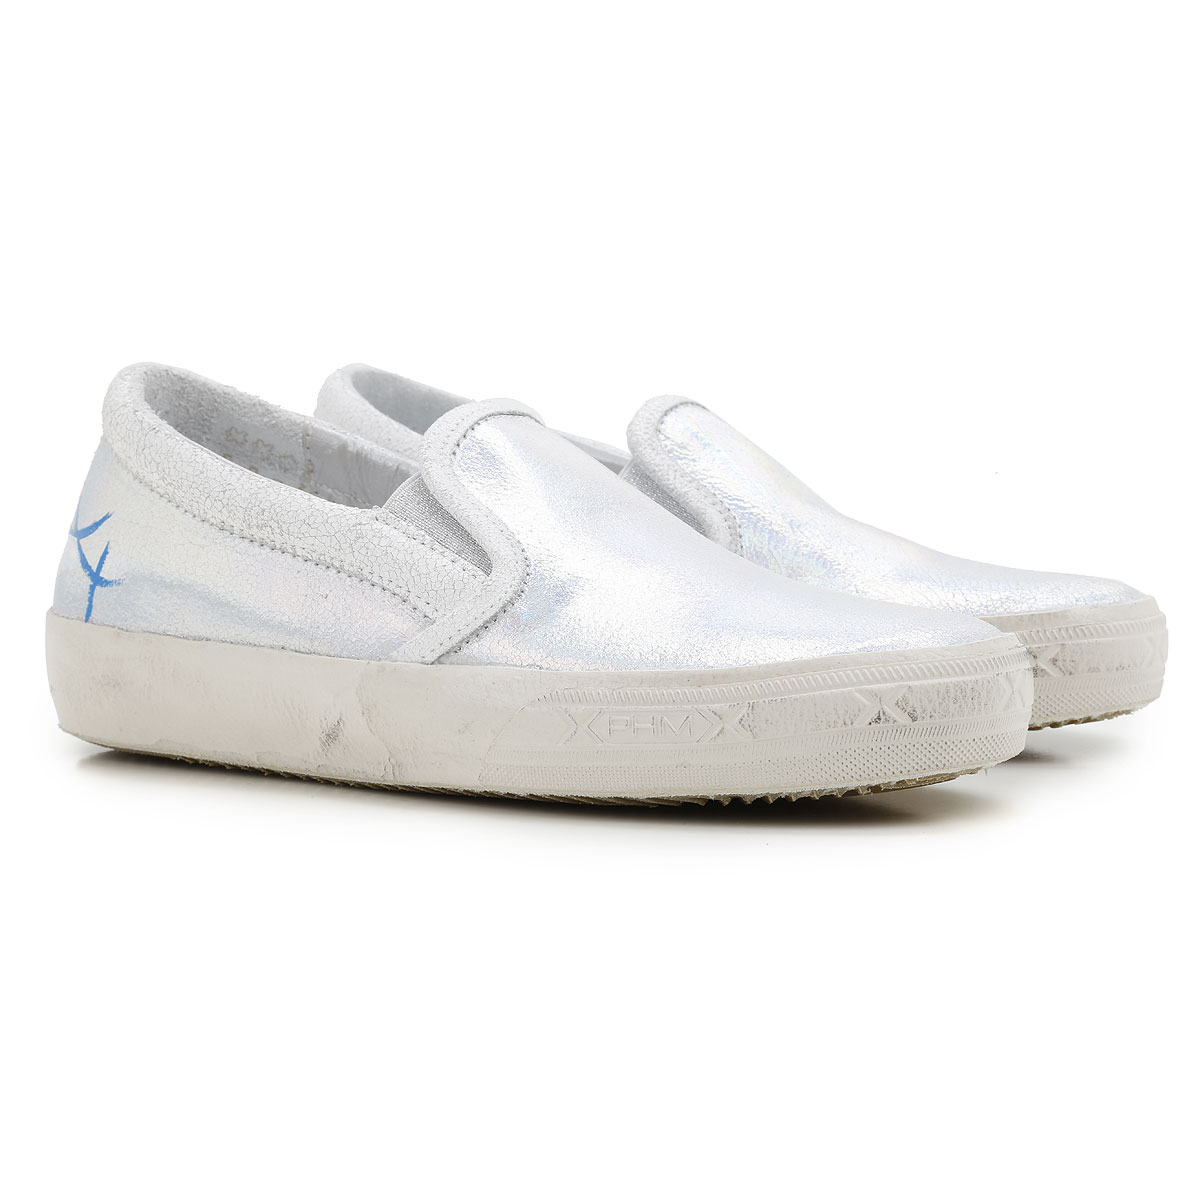 Philippe Model Slip on Sneakers for Women On Sale in Outlet, Siren, Leather, 2019, 4.5 6.5